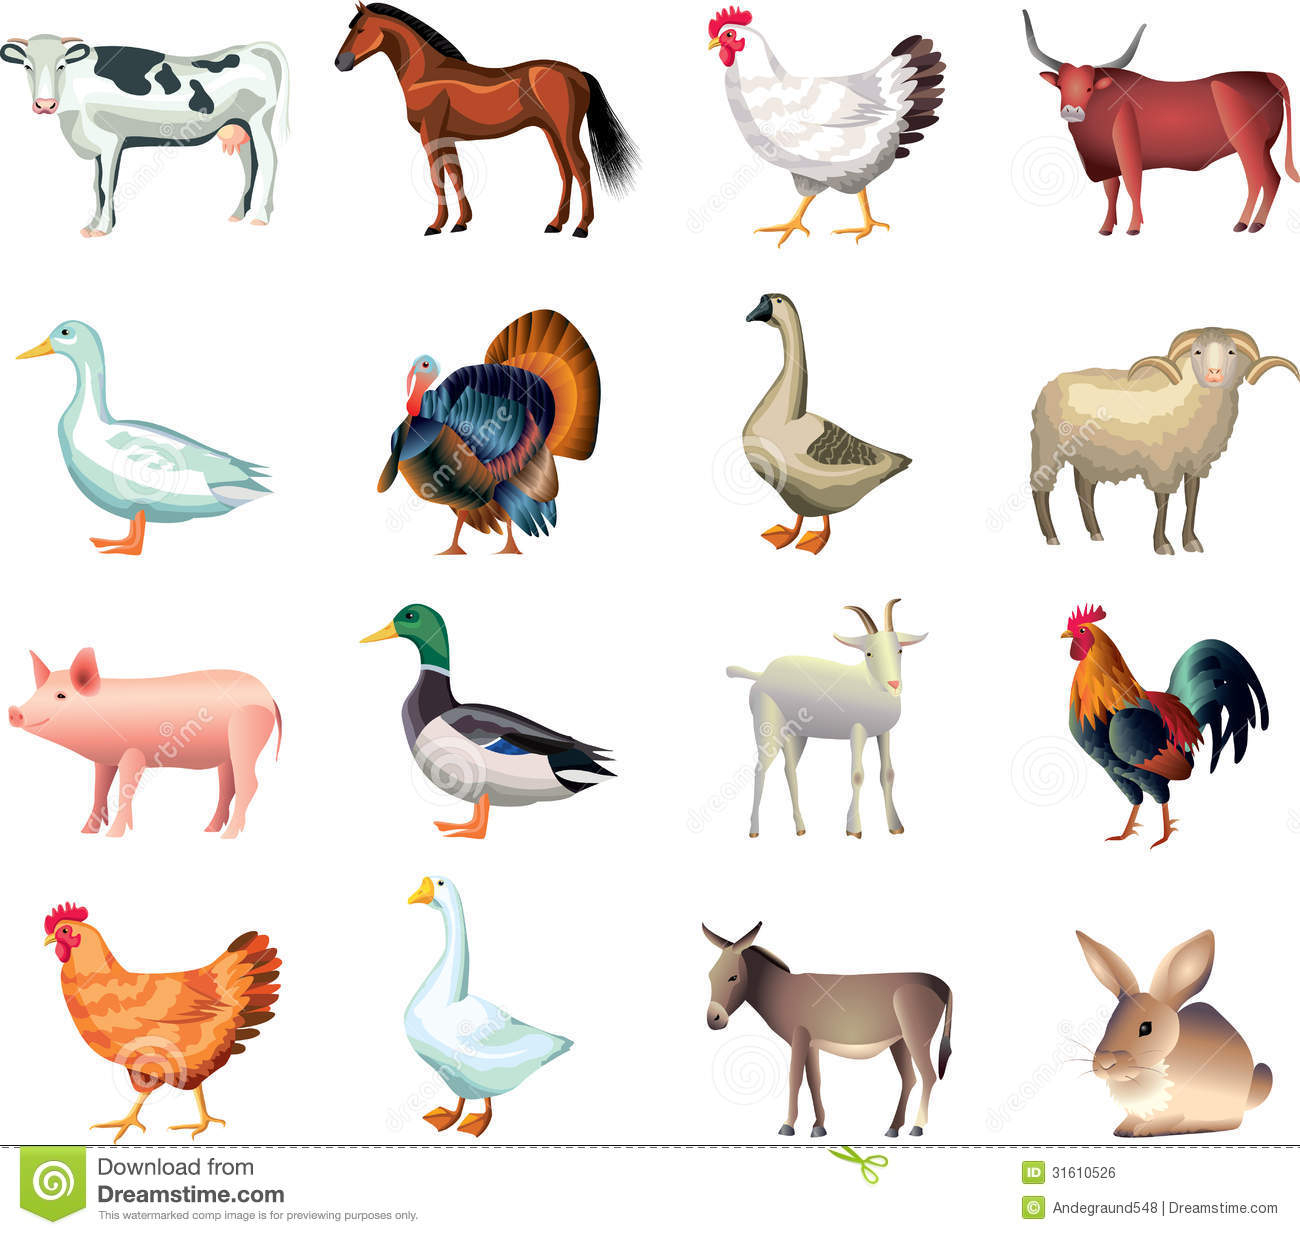 Domestic Animals Clipart Free Collection - Free Printable Farm Animal Clipart